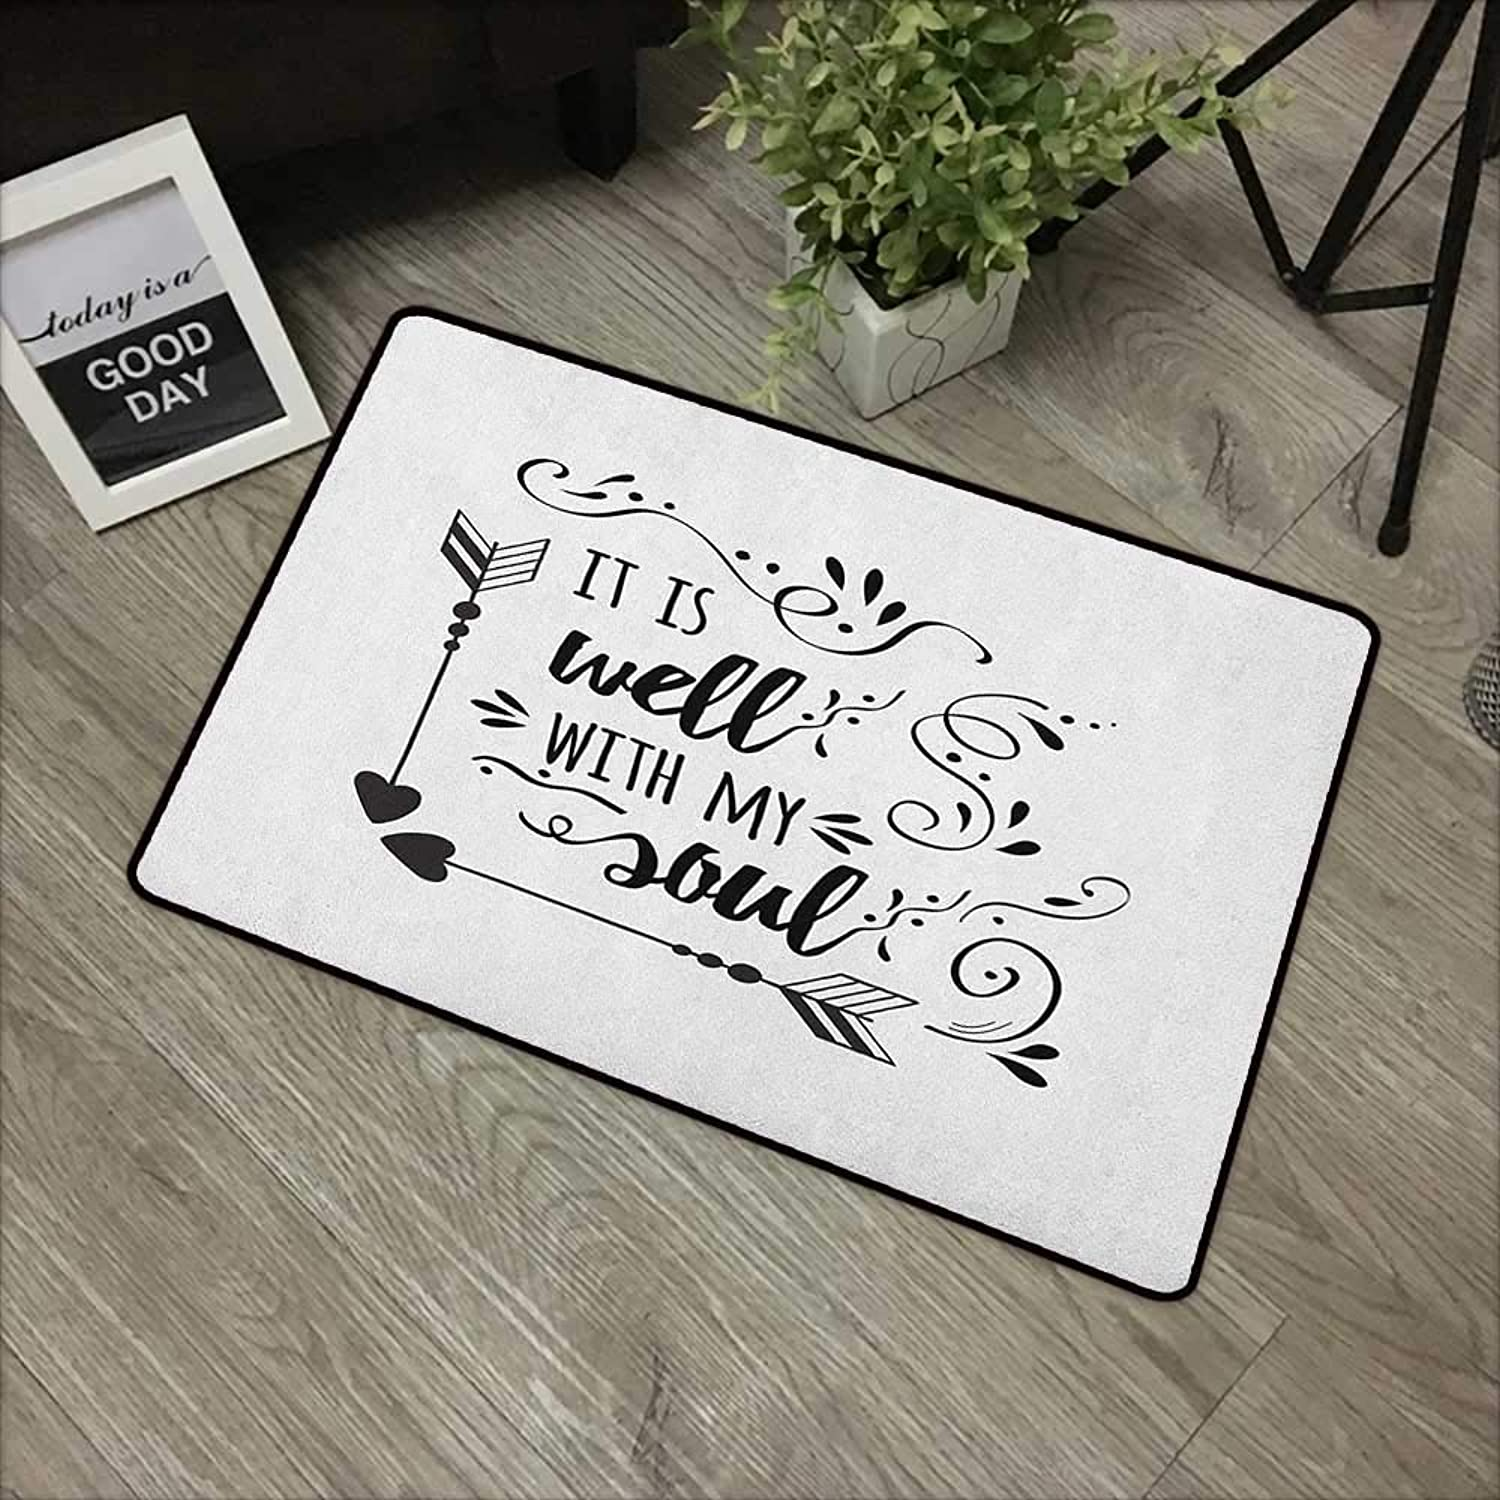 Bathroom anti-slip door mat W35 x L47 INCH It is well with my soul,Doodle Style Positive Inspirational Quote with Swirls Heart Arrows, Black White Non-slip, with non-slip backing,Non-slip Door Mat Car